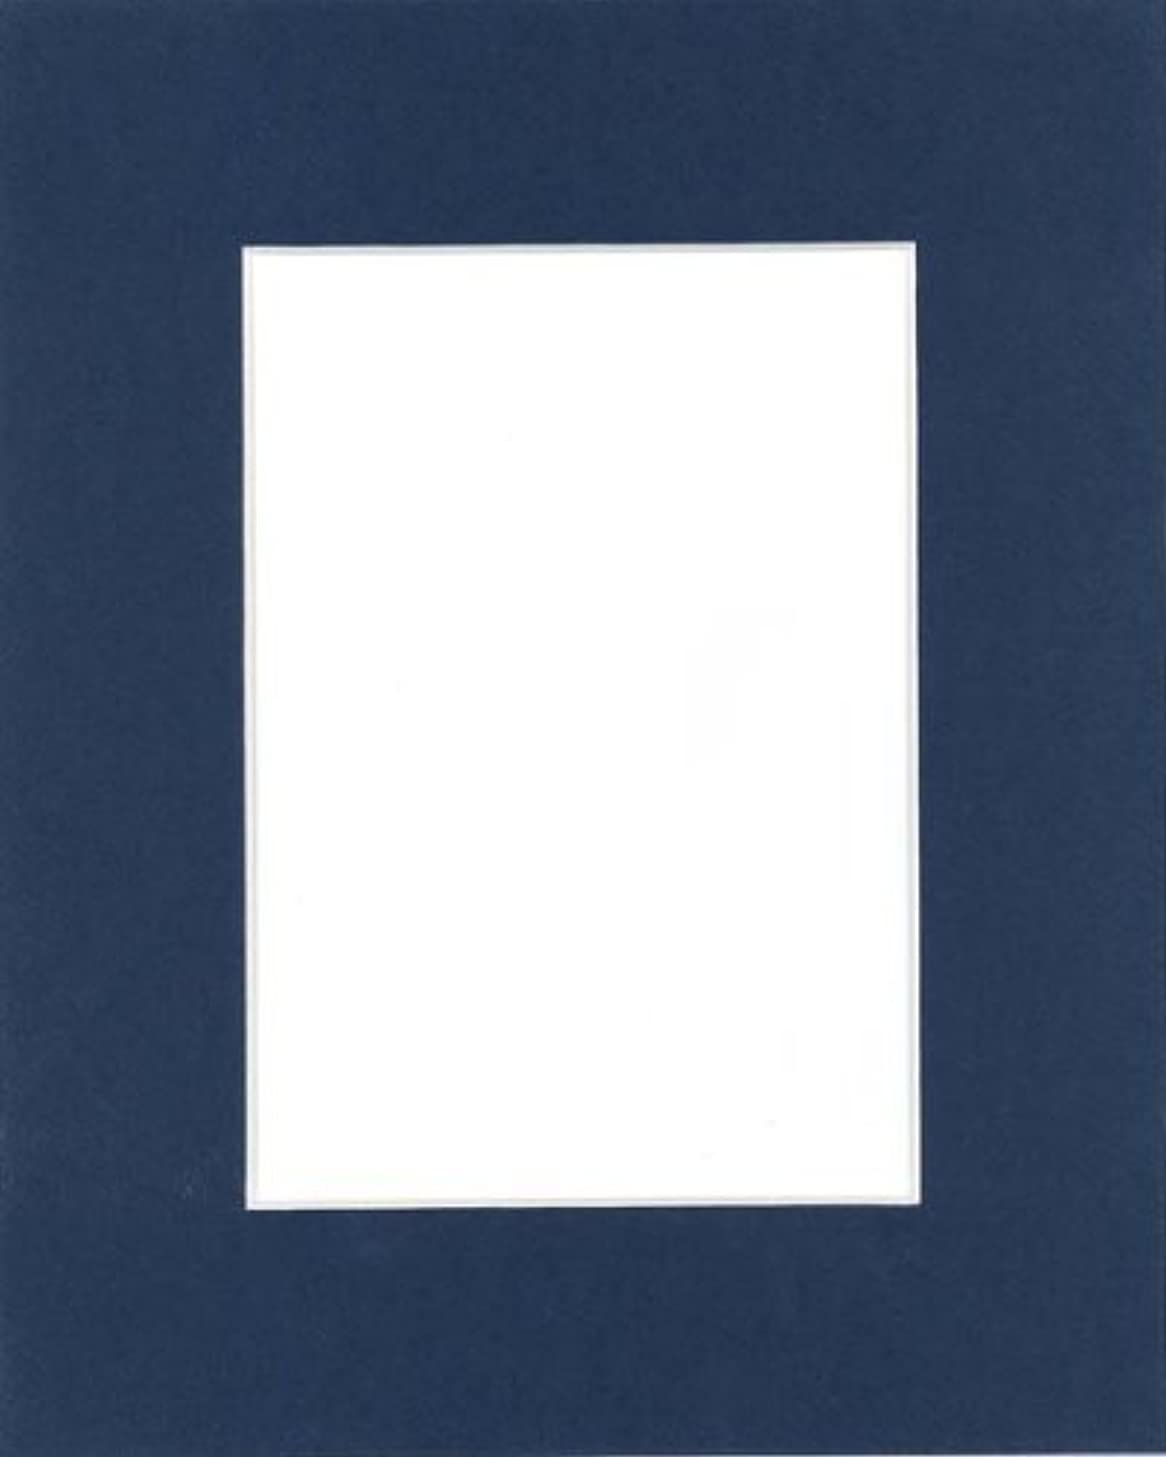 Pack of 25 11x14 Dignity Blue Picture Mats Mattes with White Core Bevel Cut for 8x10 Photo + Backing + Bags